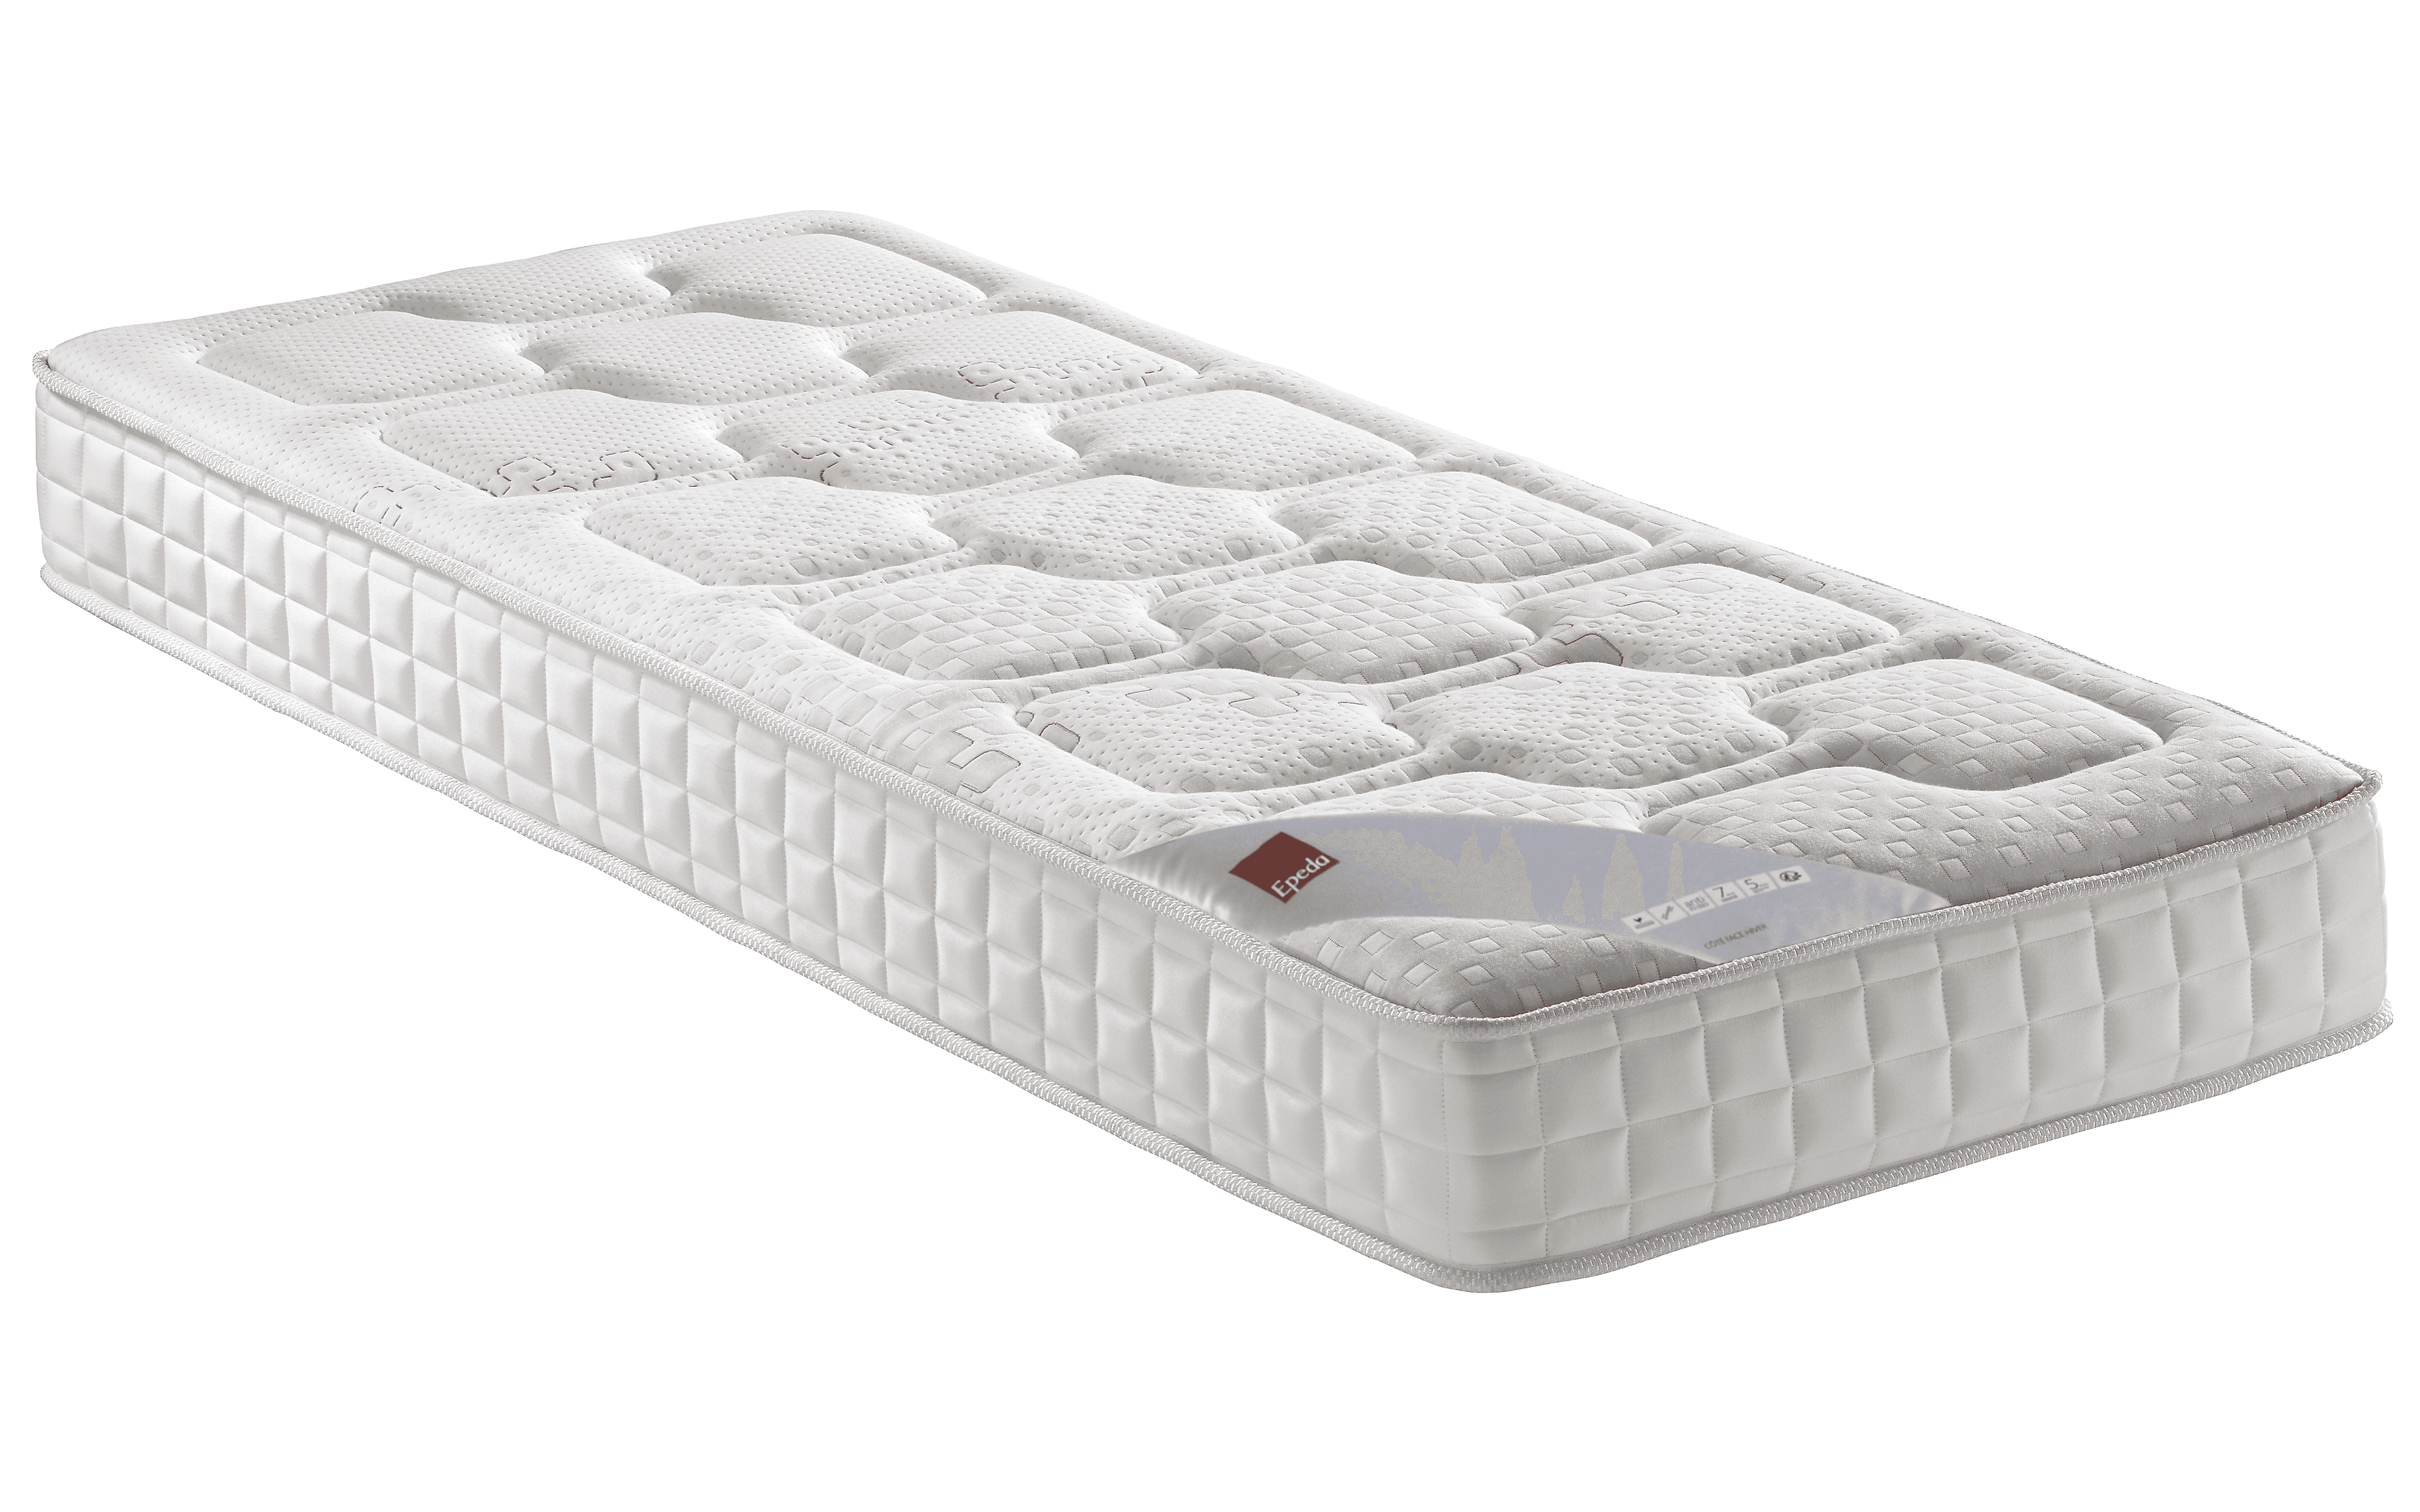 luxe matelas 70 190 conforama id es de bain de soleil. Black Bedroom Furniture Sets. Home Design Ideas